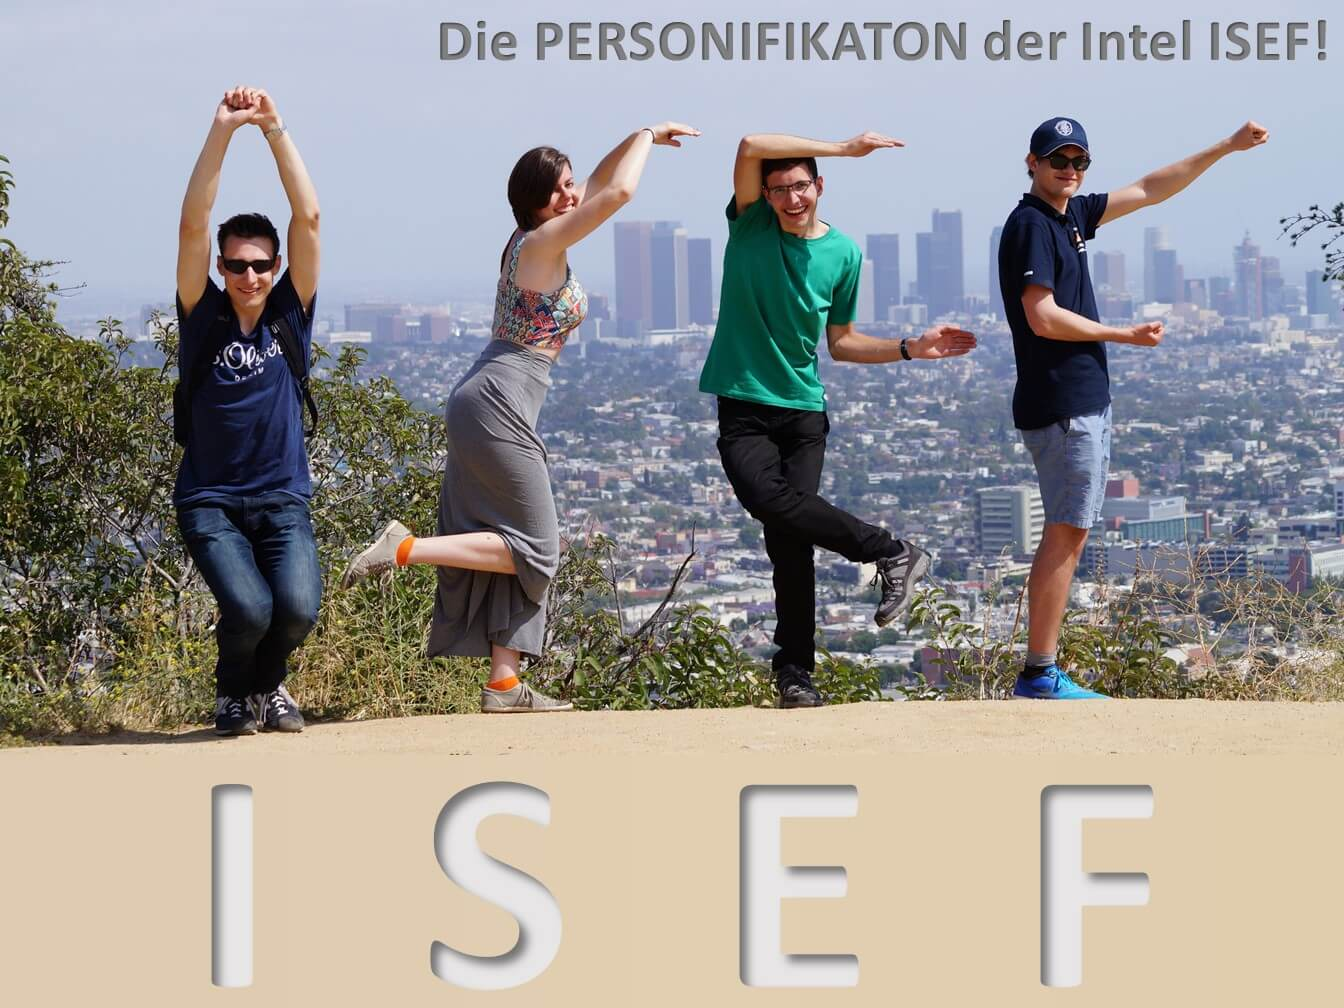 Personifikation ISEF